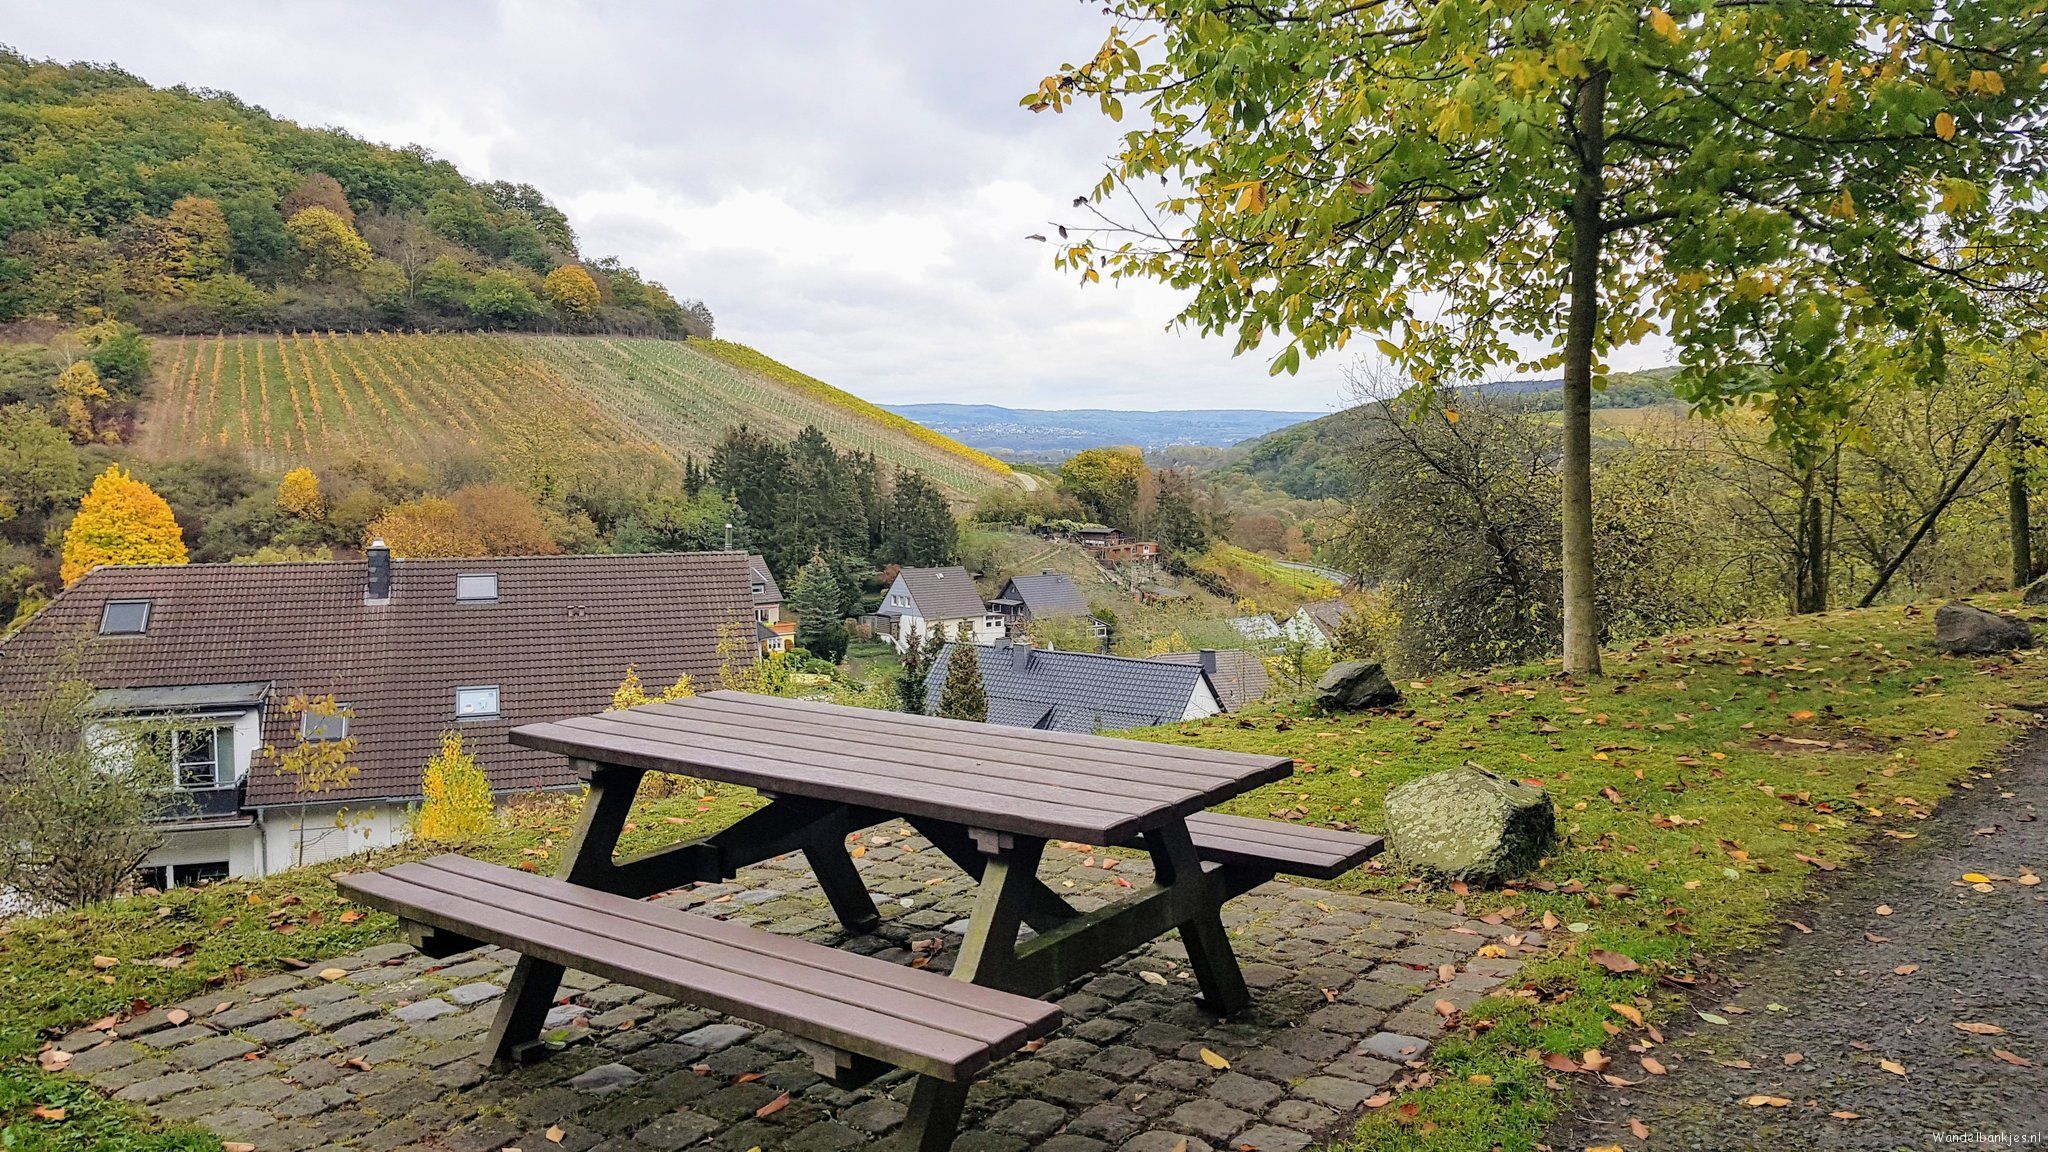 rt-wolf-hiking-plan-lohrdorf-in-the-ahrdal-walking benches-https-t-co-duxeh5lqes